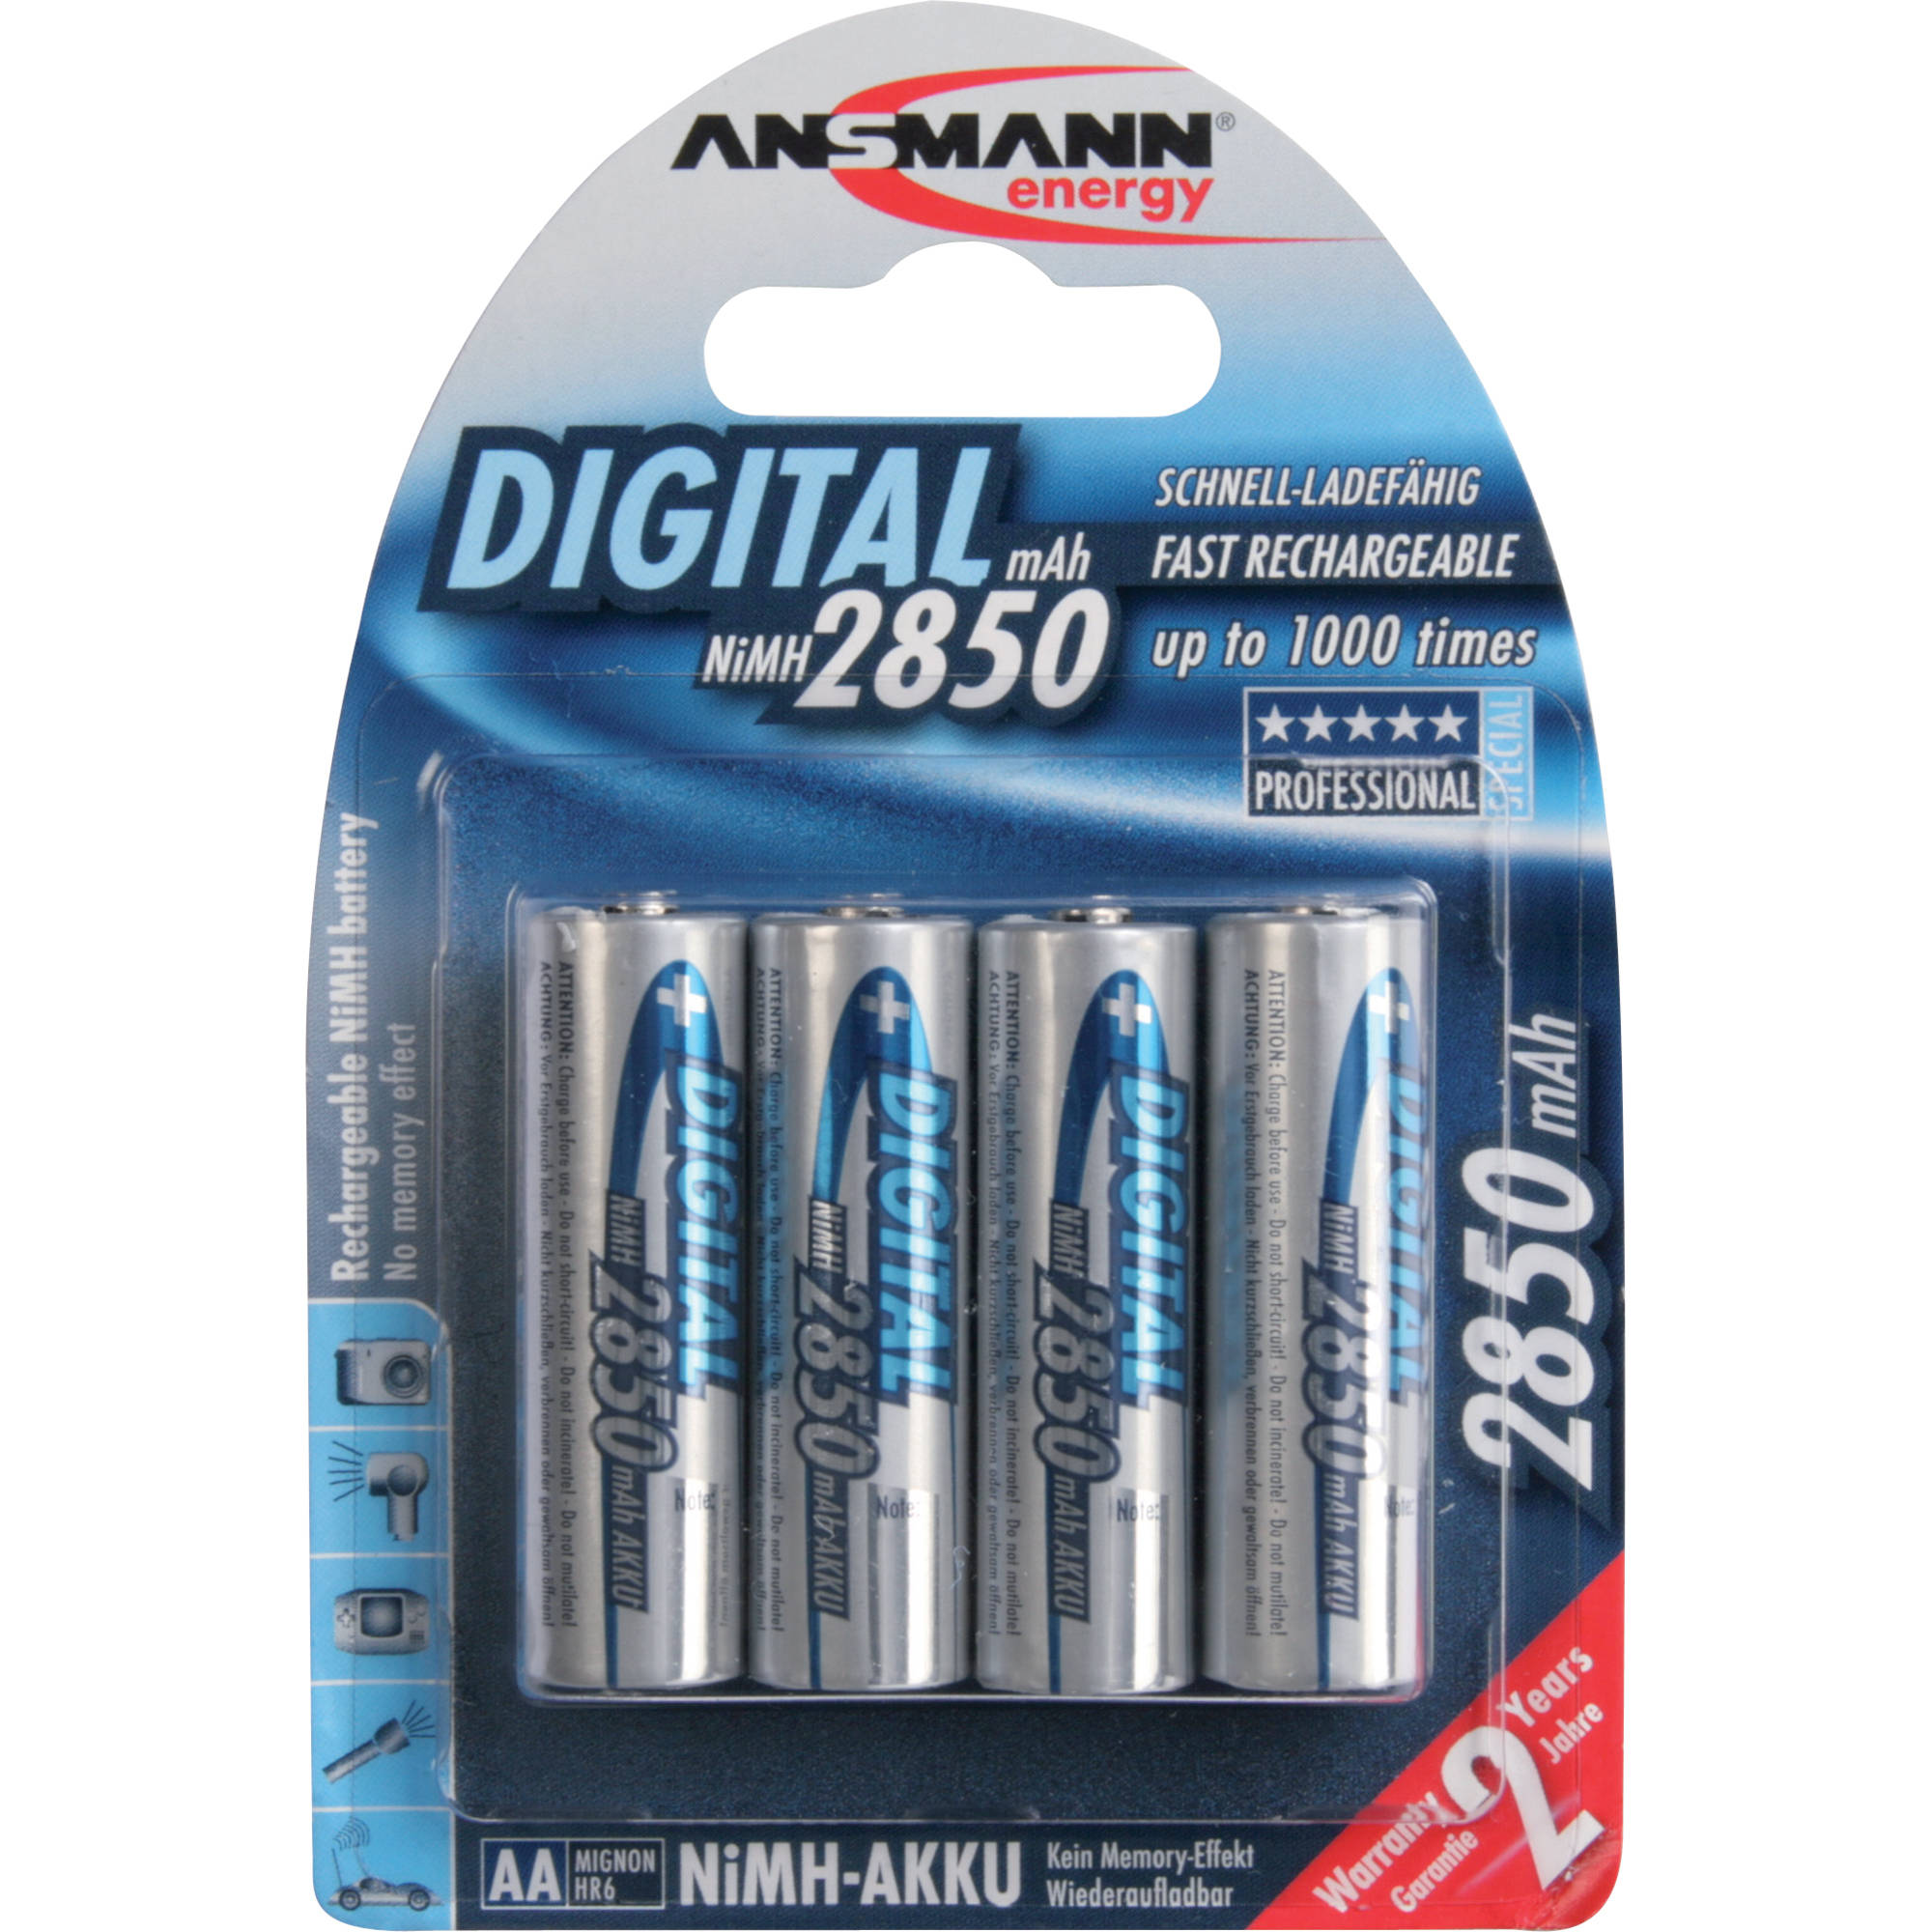 Ansmann AA Rechargeable NiMH Batteries 2850mAh 4 Pack